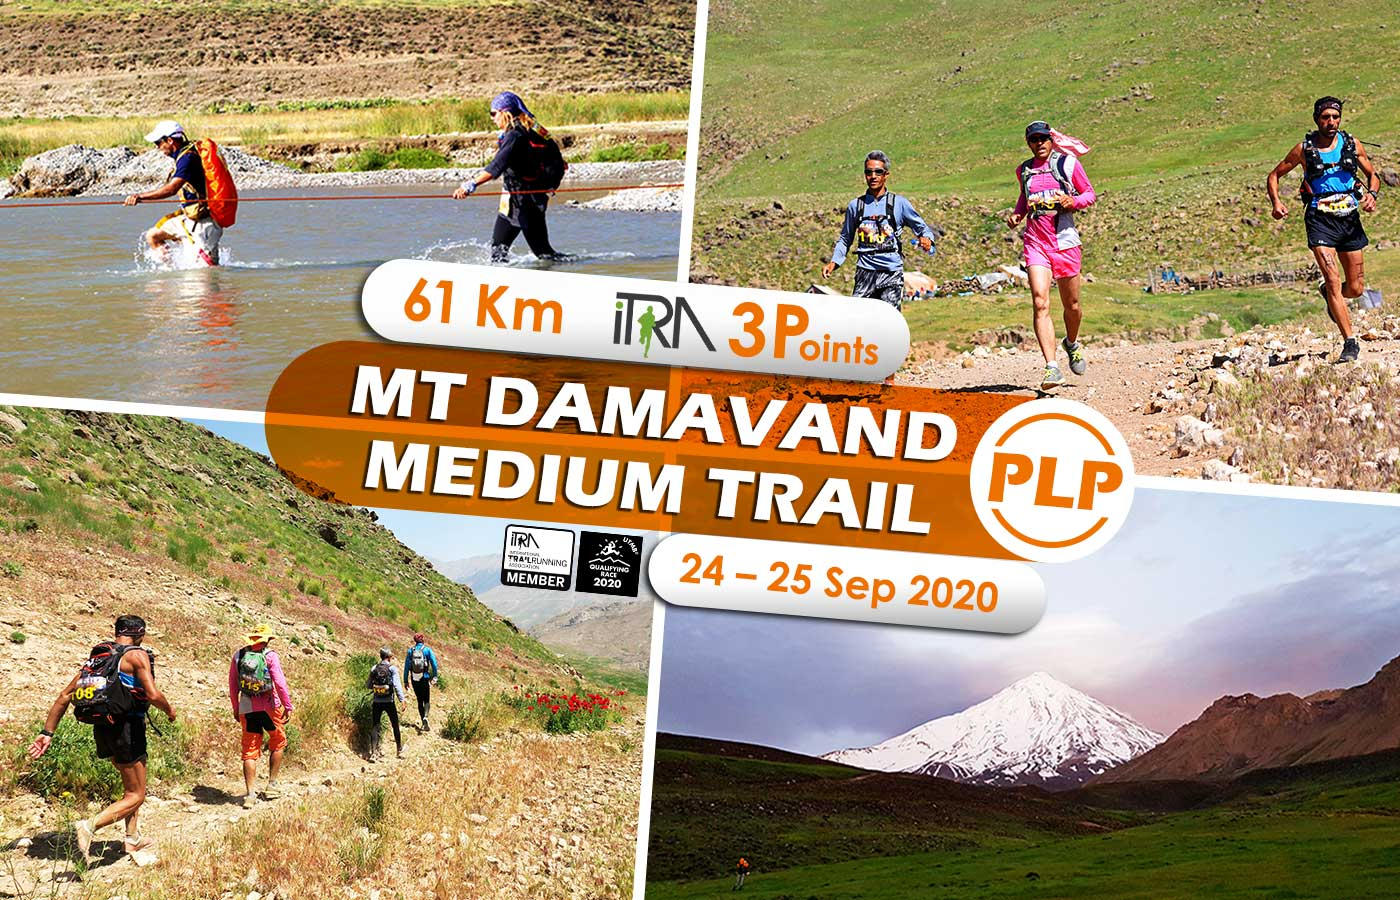 Mt Damavand Medium Trail